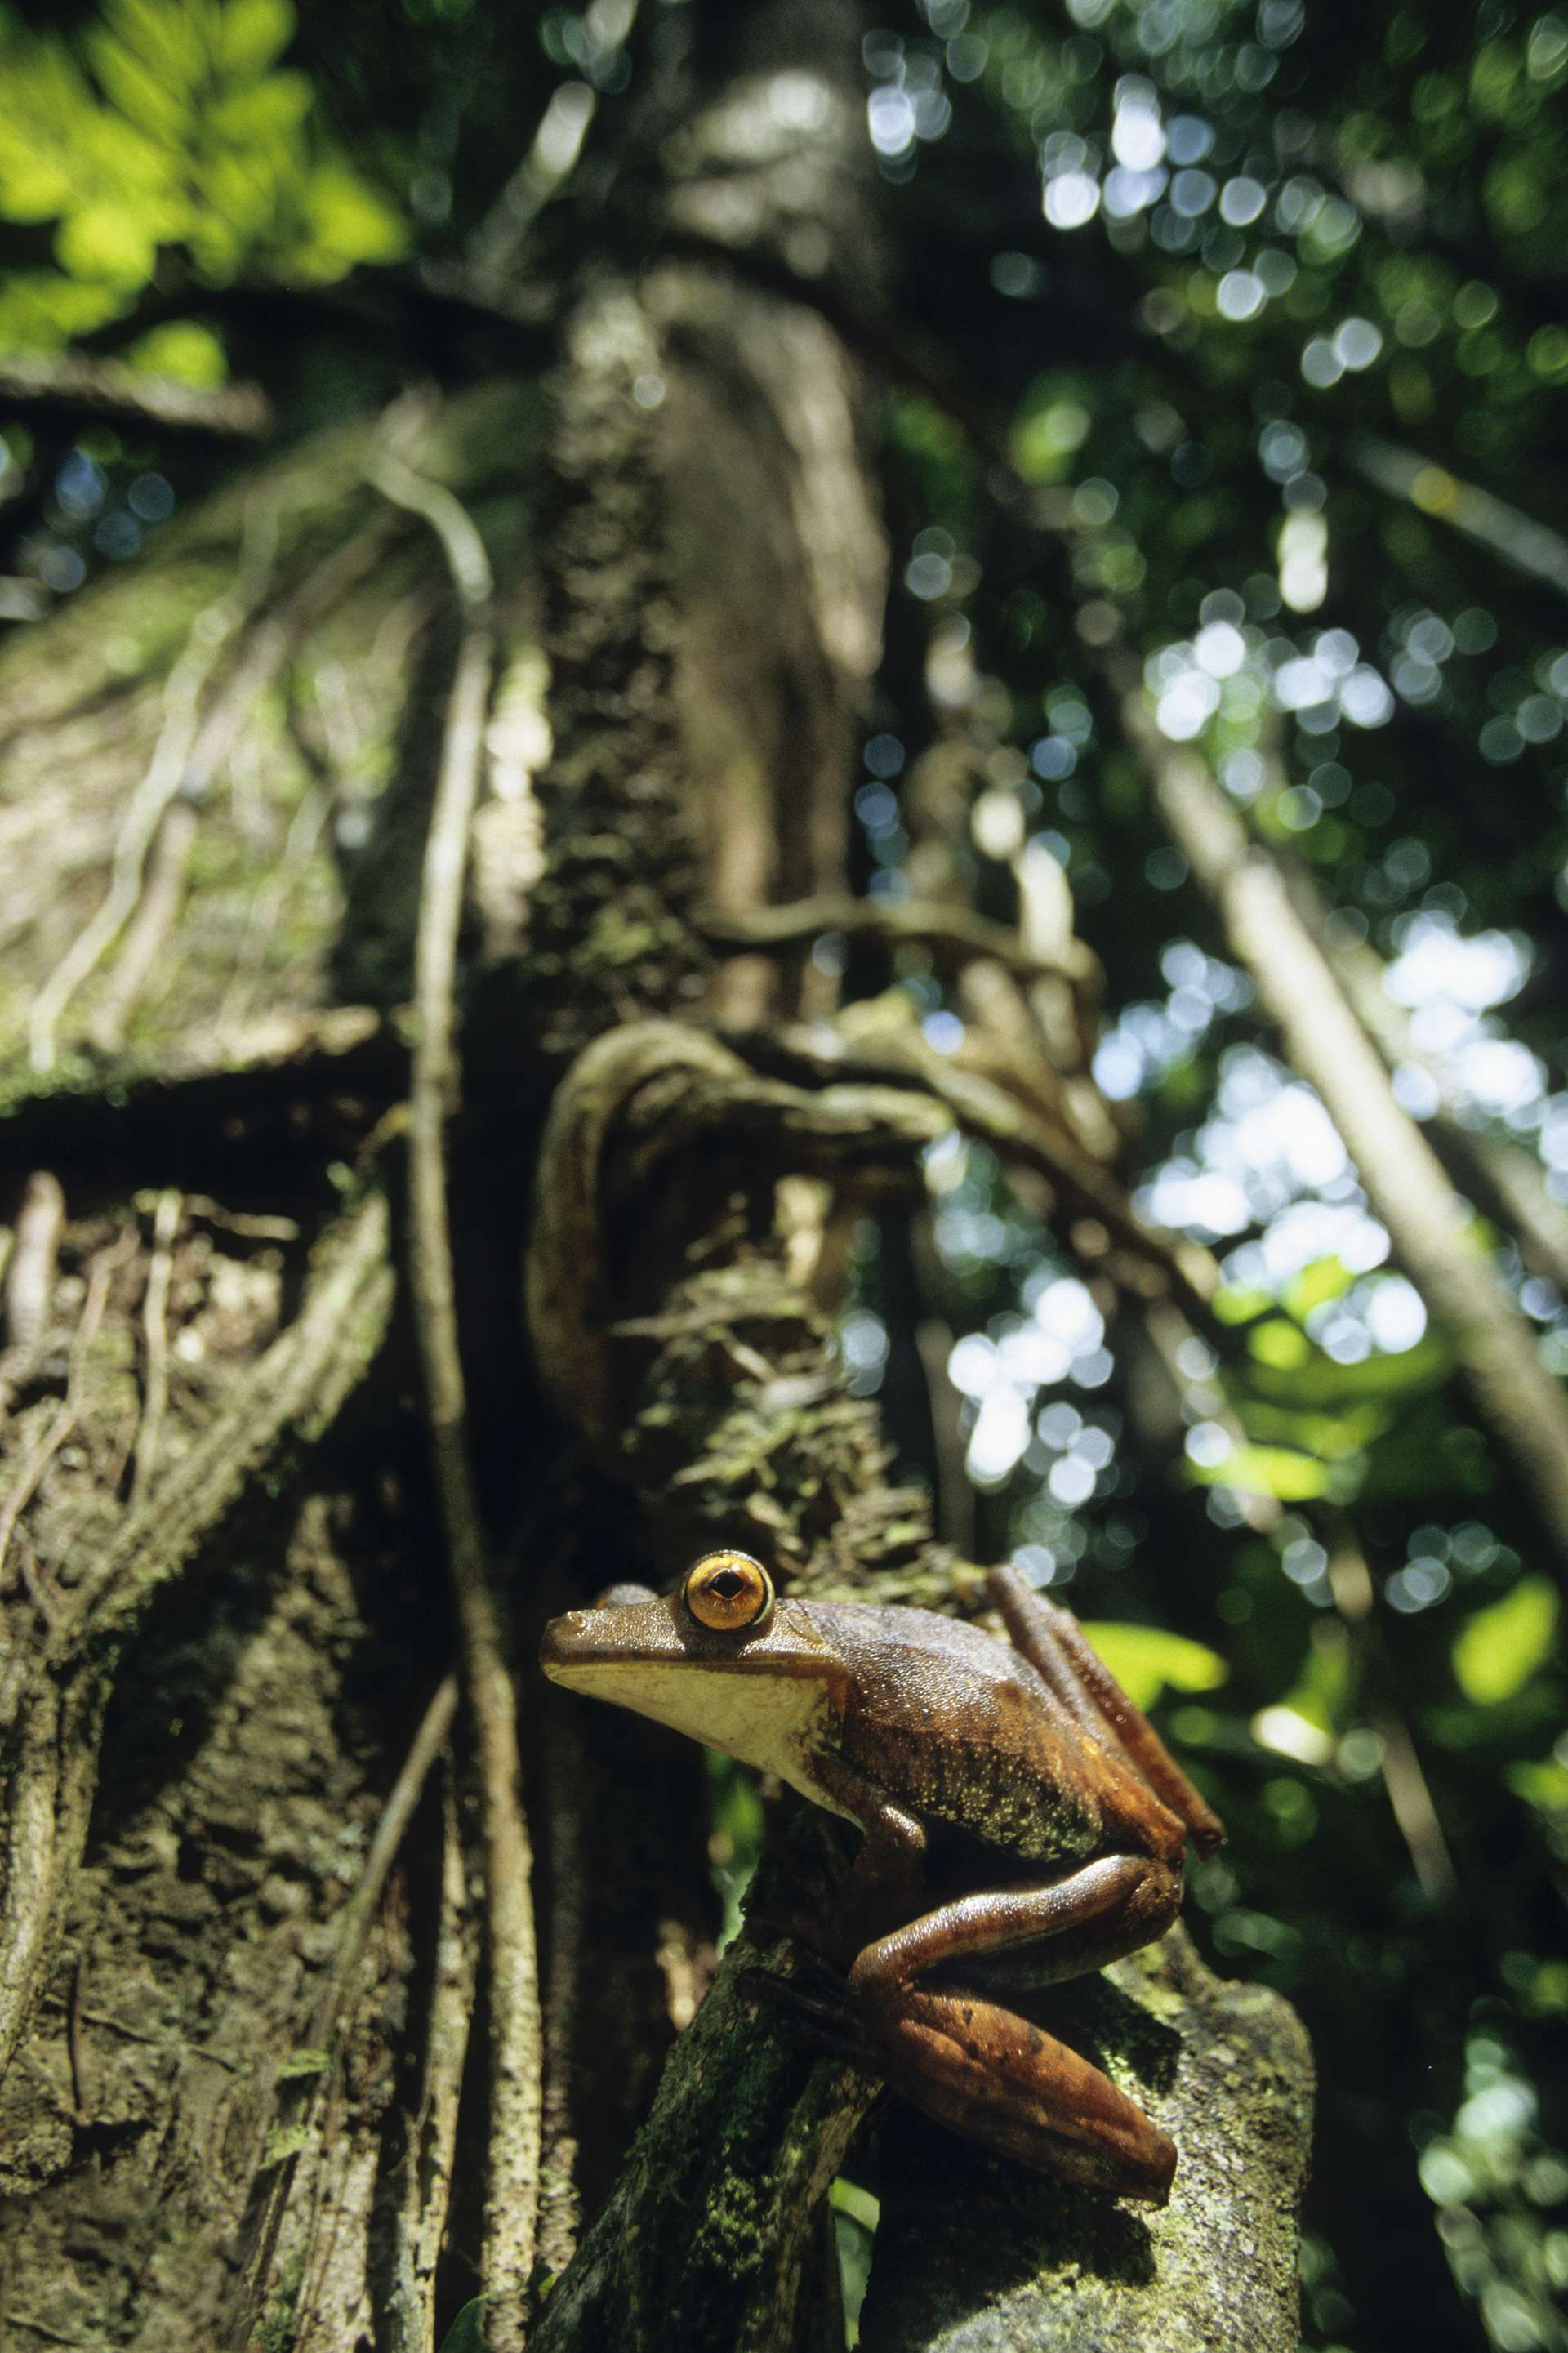 Gilles Martin's photograph of a tree frog from French Guiana